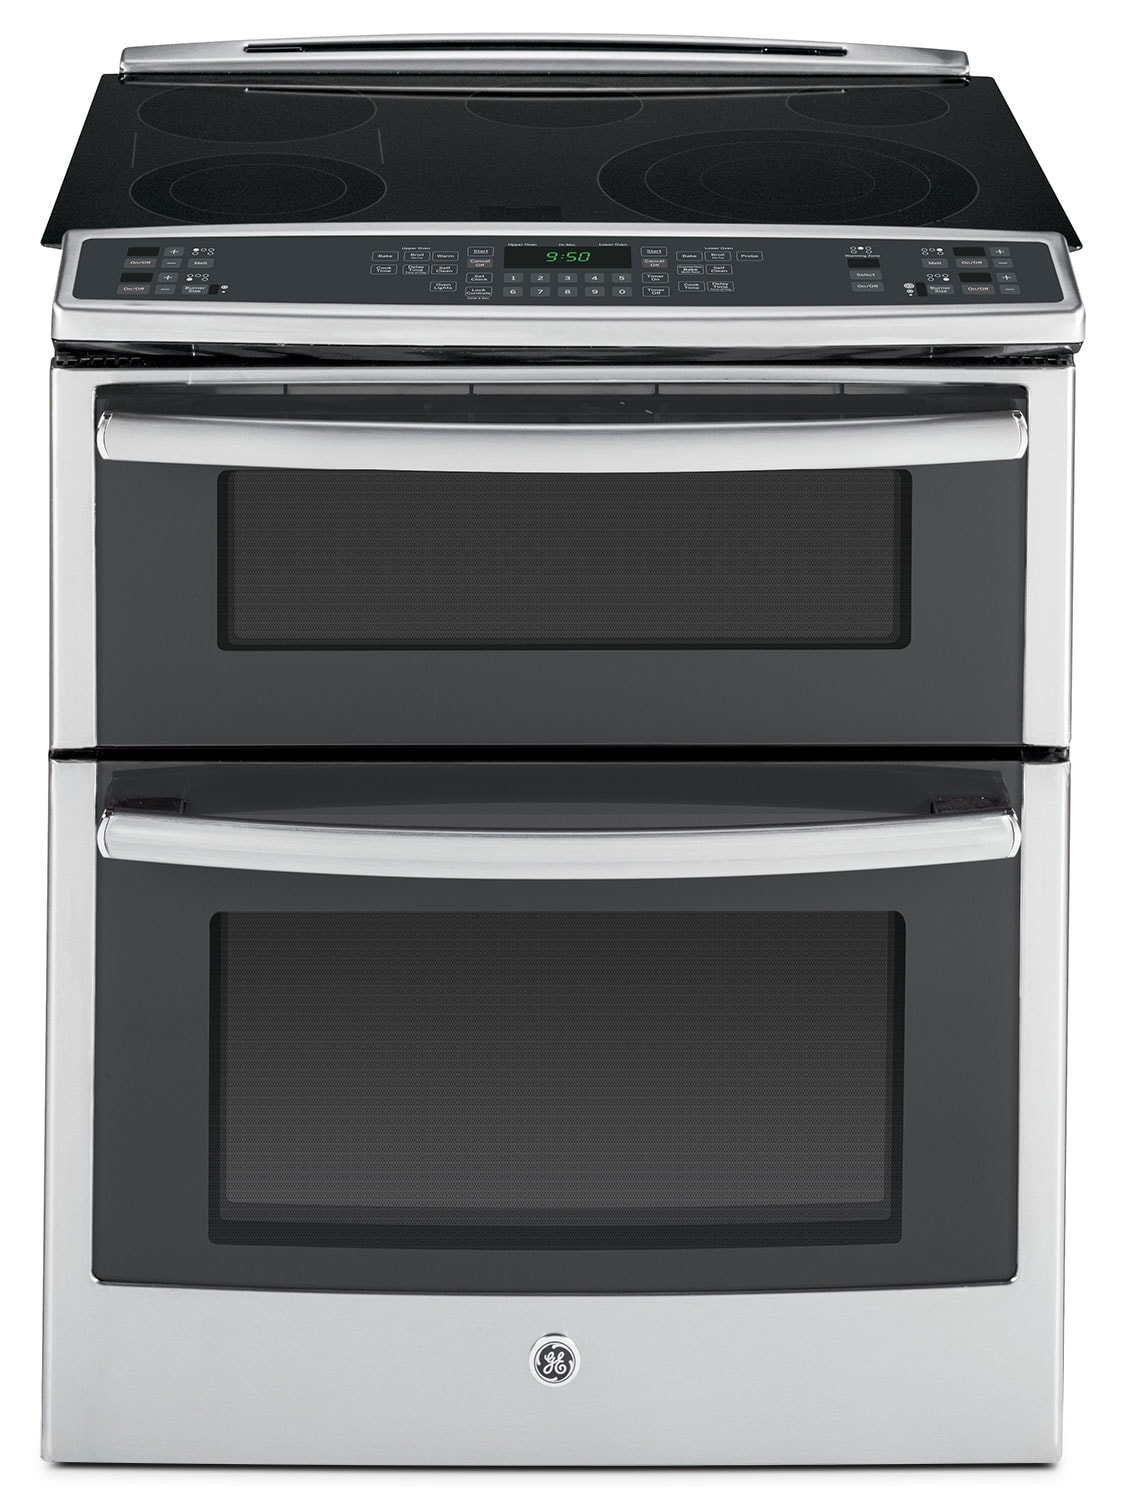 Cooking Products - GE Stainless Steel Slide-In Electric Double-Oven Convection Range (6.6 Cu. Ft.) - PS950SFSS